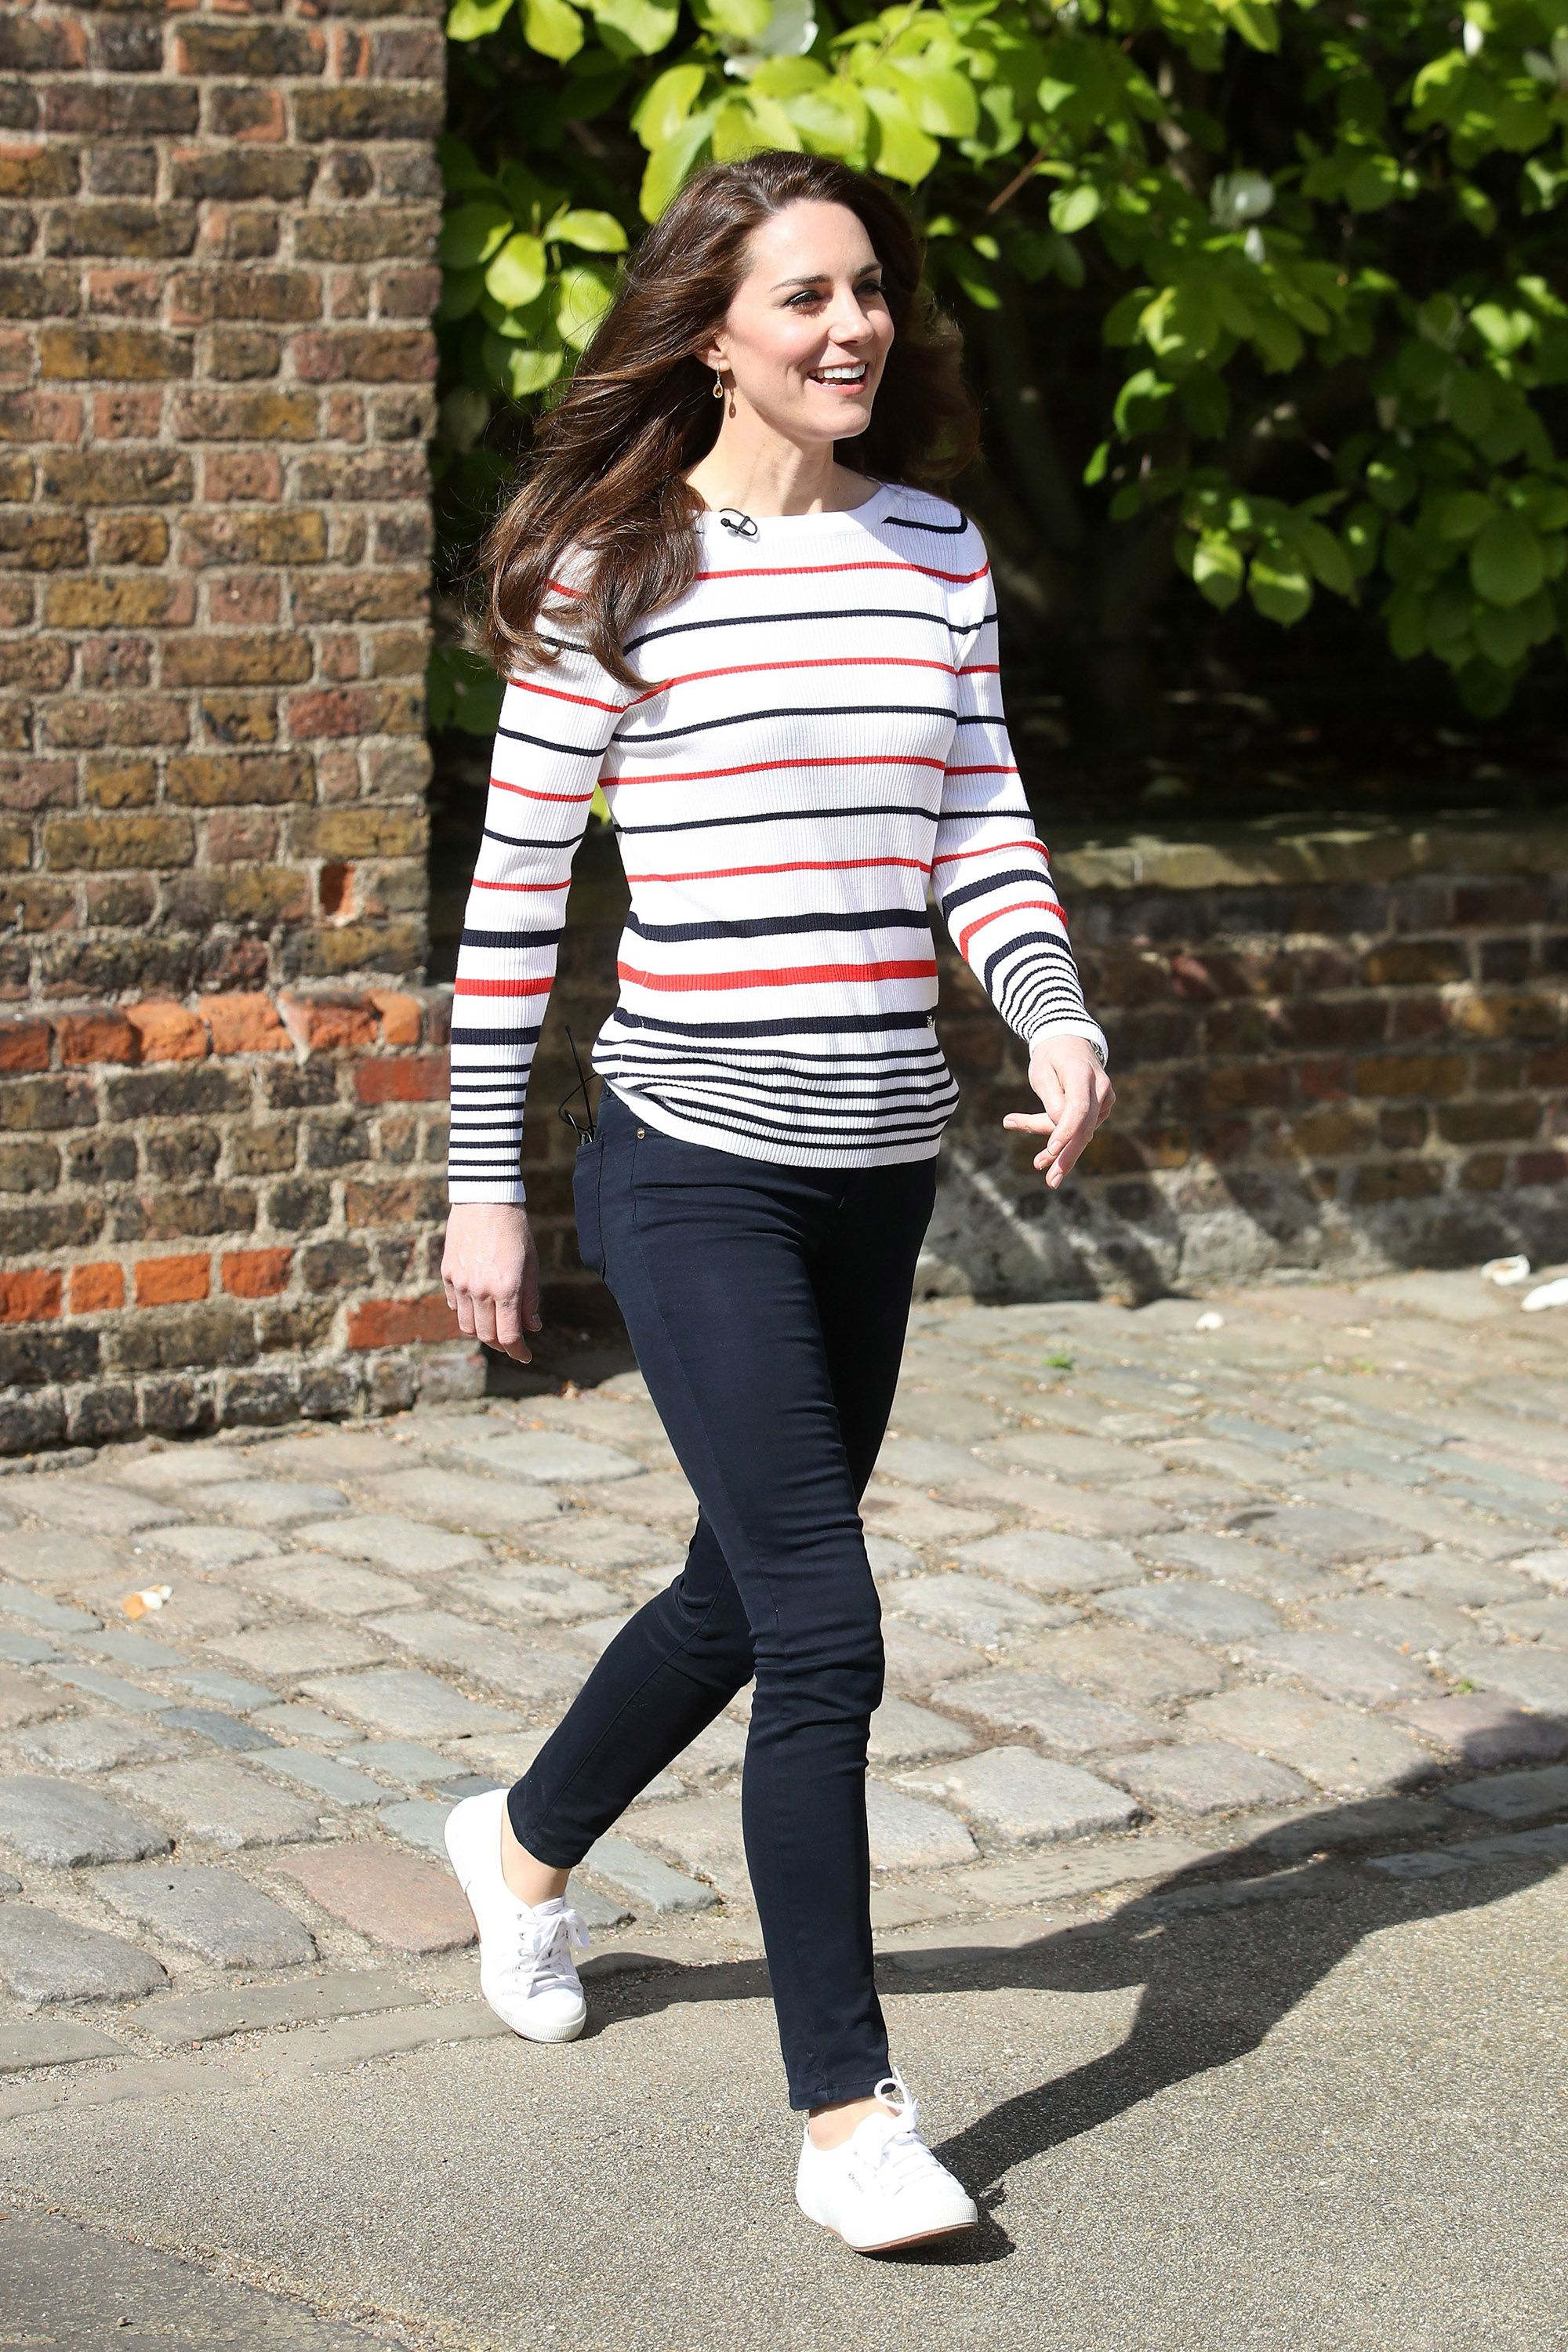 0afcbf76 Kate Middleton Jeans and Pants Outfits - Kate Middleton's Casual Outfits  and Style